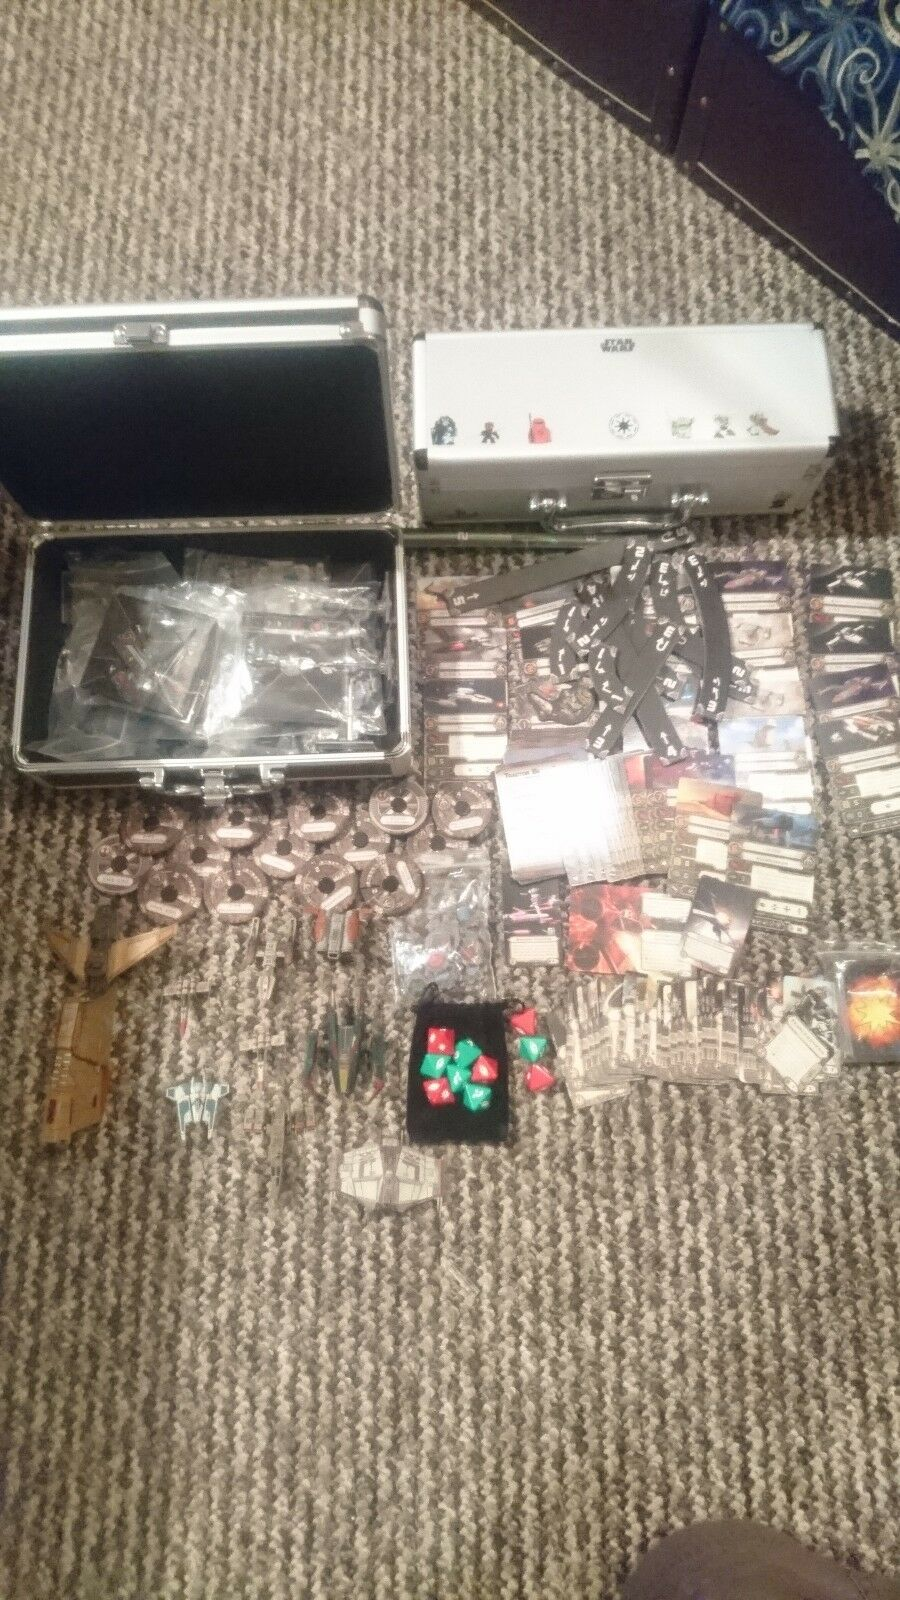 Star Wars X-wing Miniatures - Scum Fleet 9 ships, all components, and extra